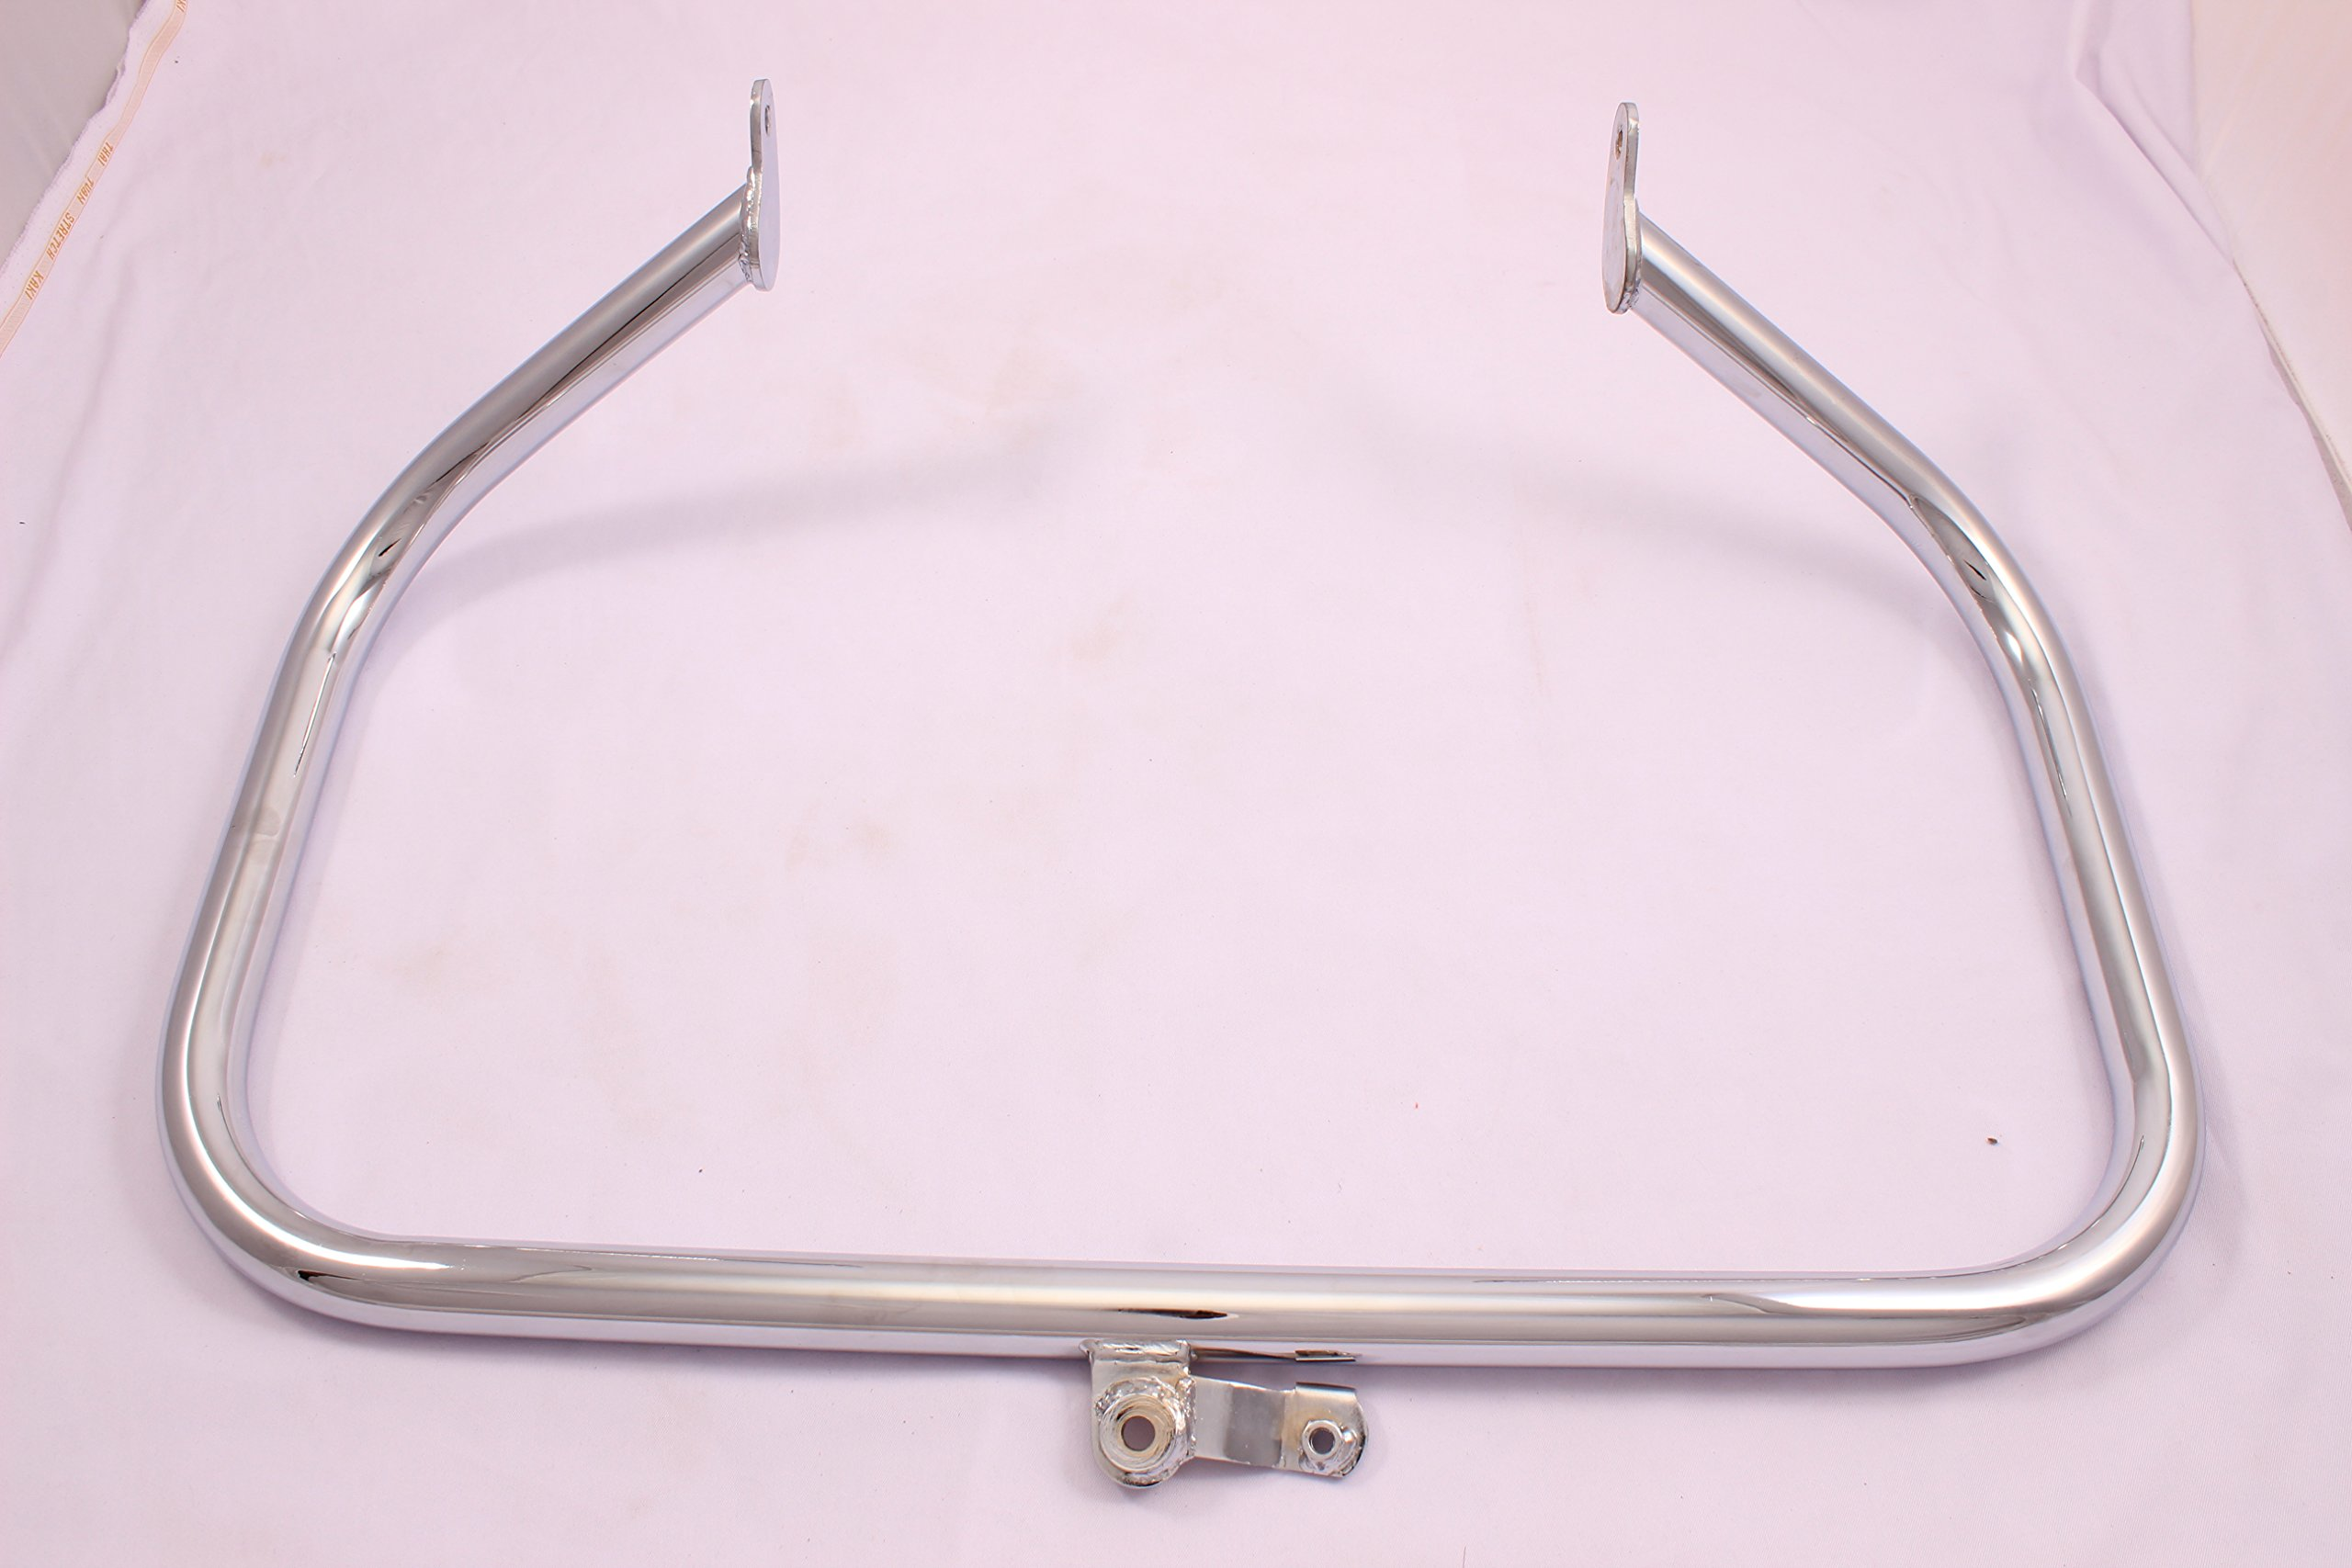 USA C36 Chrome Highway Engine Guard Crash Bar for Honda VTX 1300 R S C Models All Years